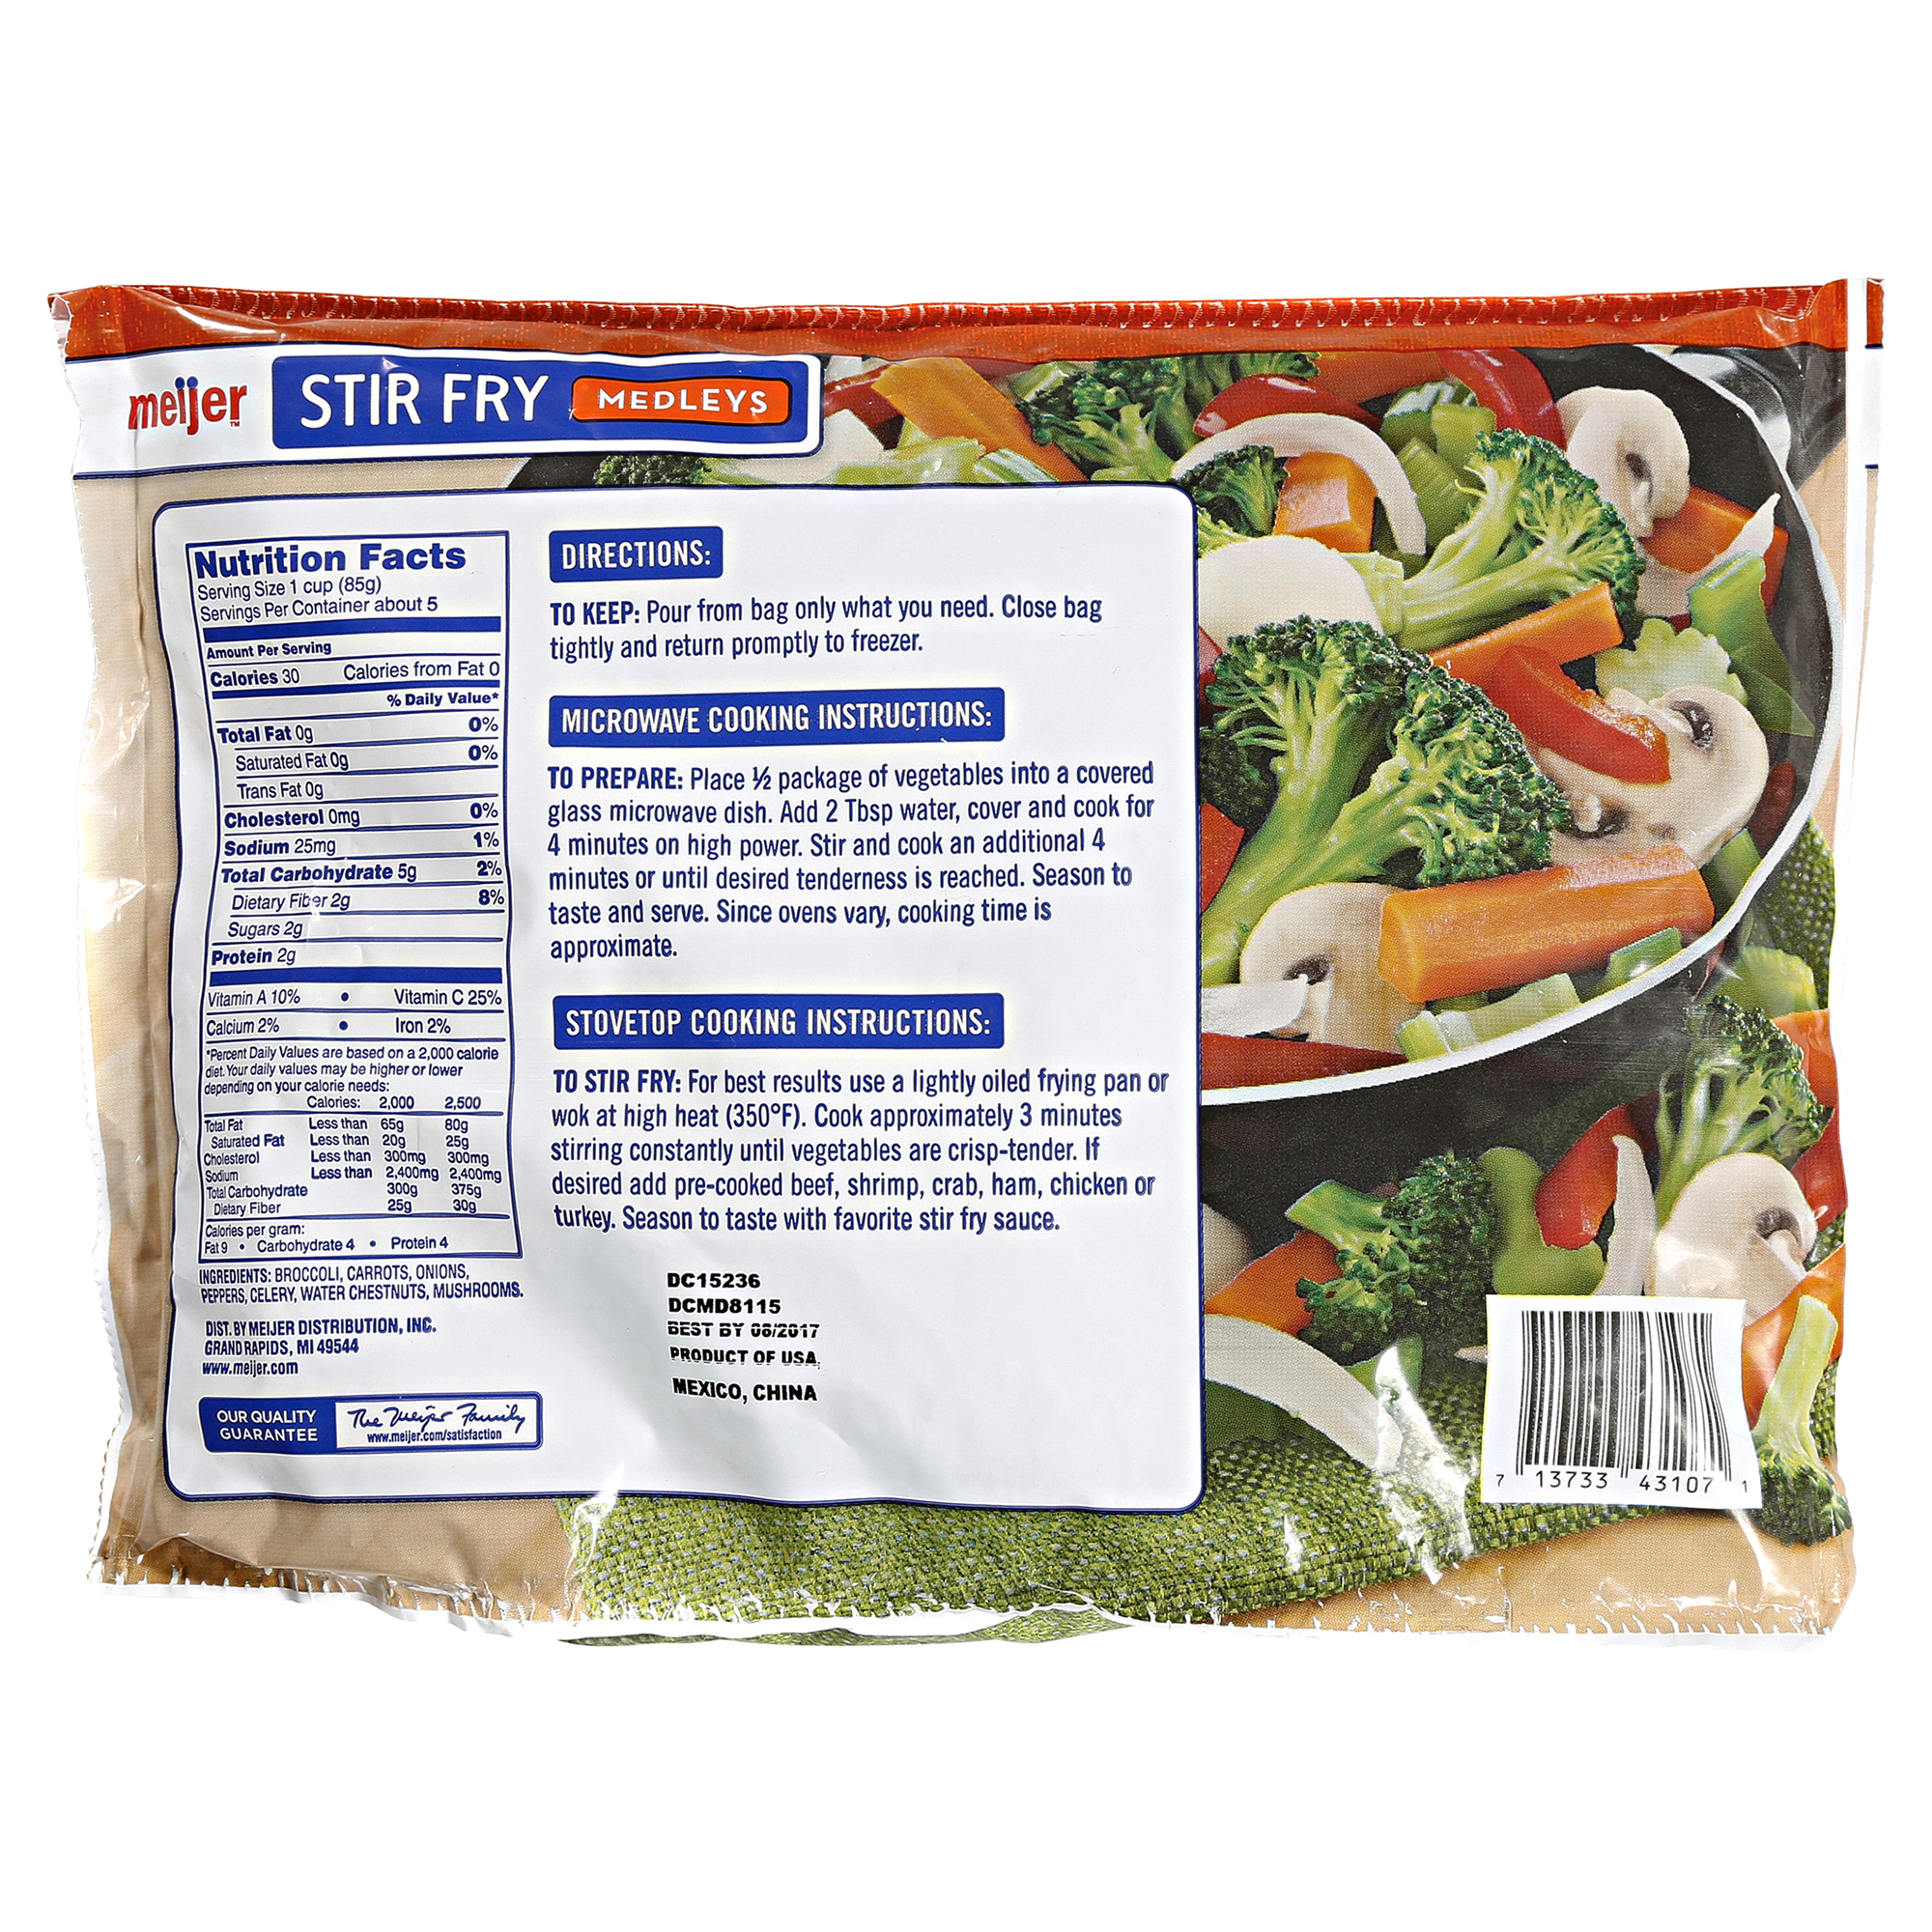 Meijer Stir Fry Vegetables Medleys 16 oz | Meijer.com